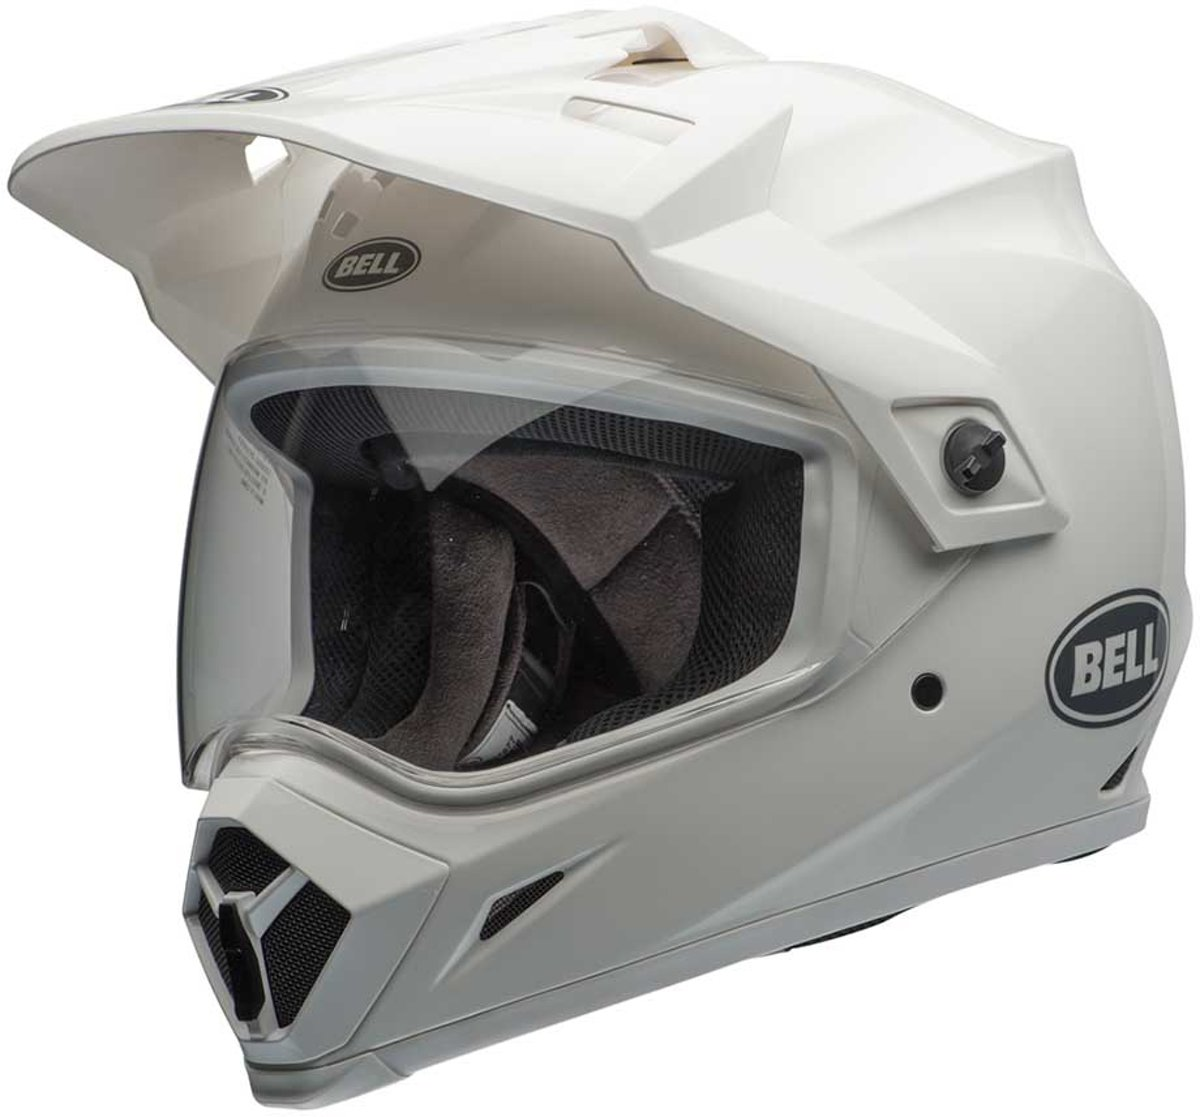 Bell Crosshelm/Endurohelm MX-9 Adventure MIPS® Gloss White-XL